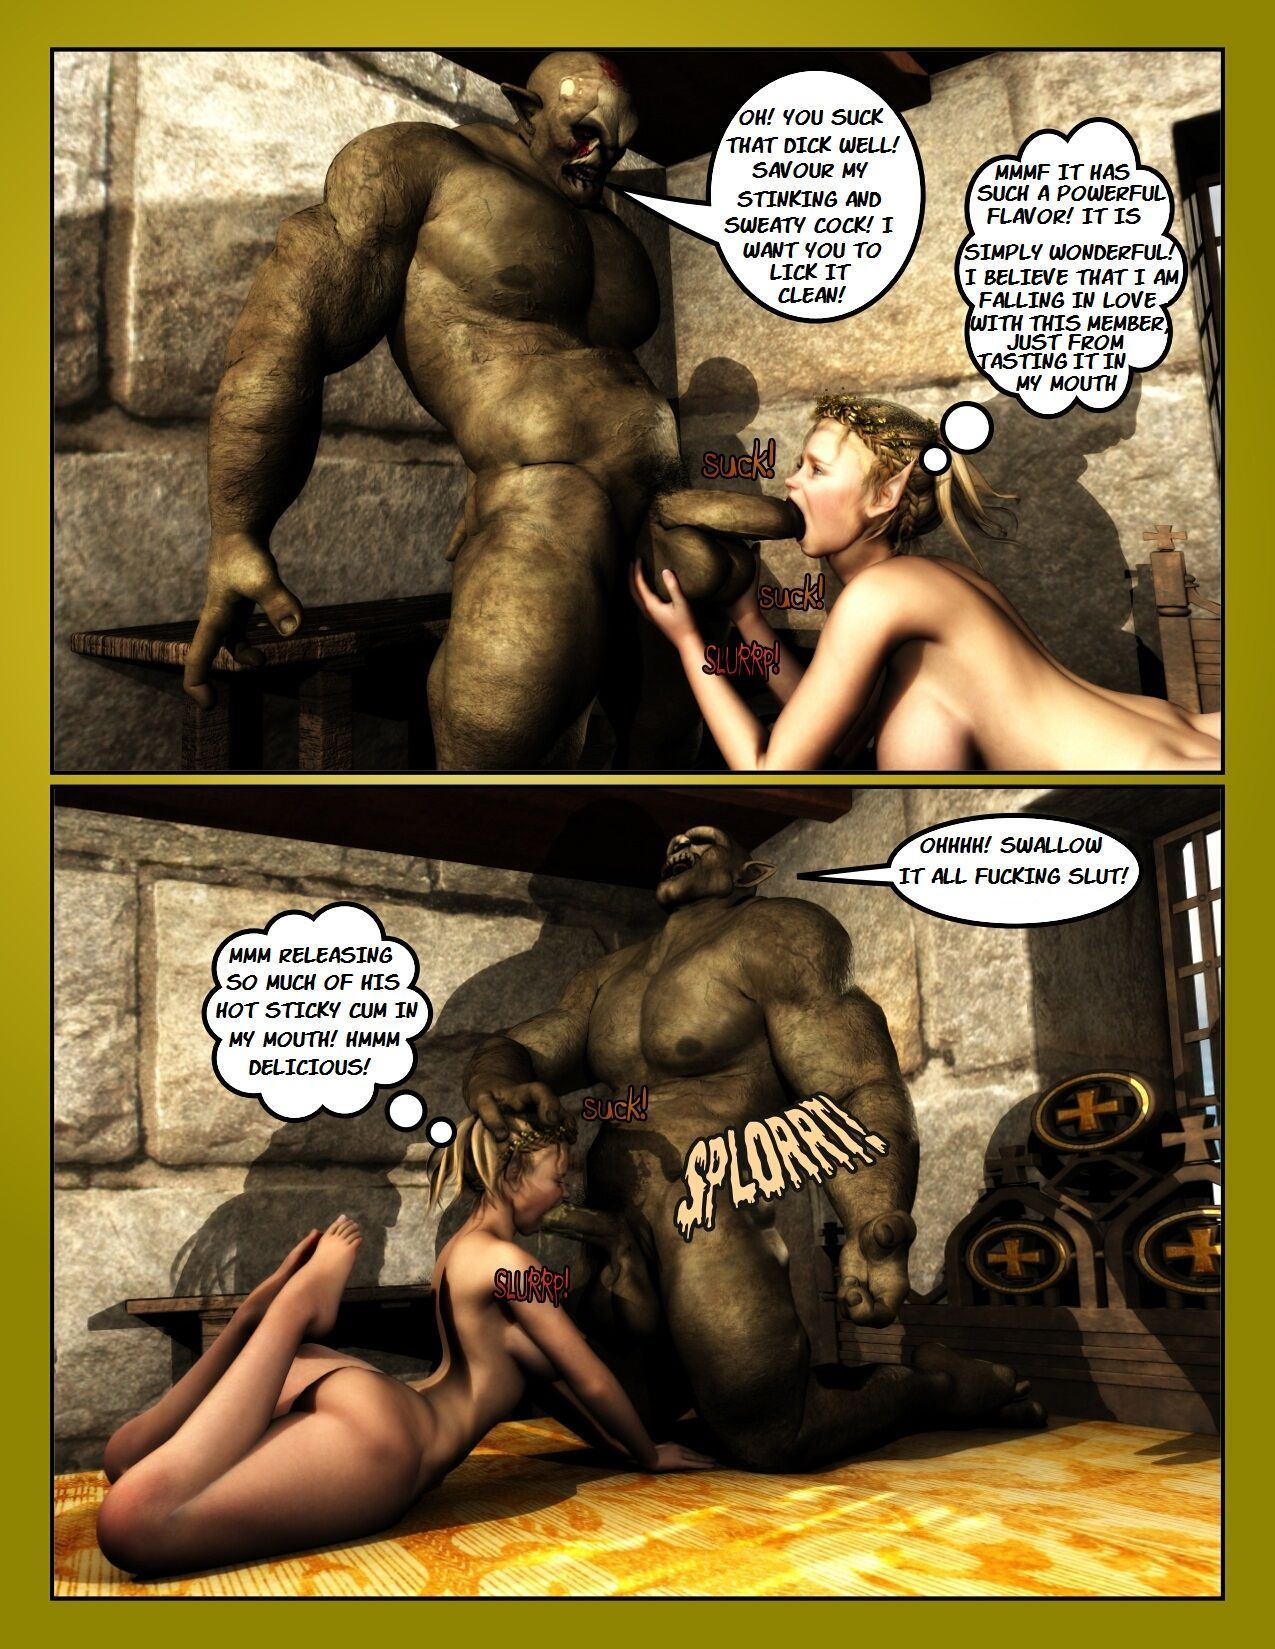 [MOIARTE] THE REWARD OF THE ORCS VOL.3 (ENGLISH) - part 2